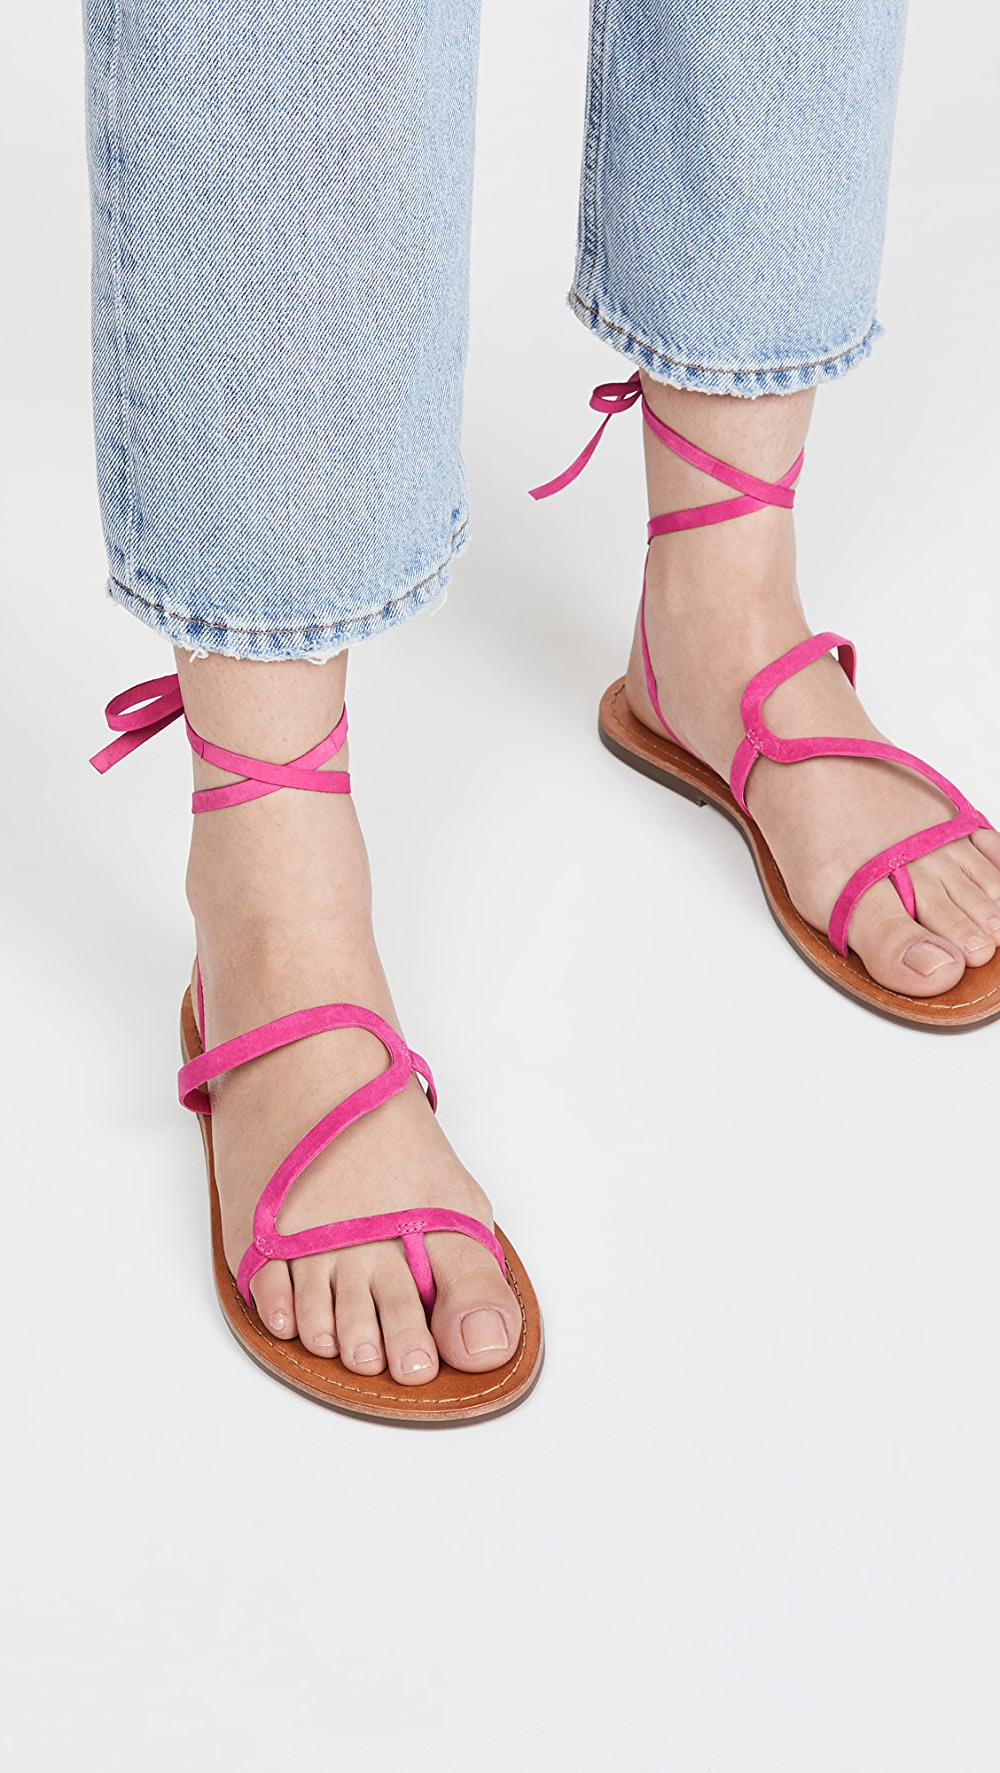 Contemplative Schutz - Urkula Sandals High Quality And Low Overhead